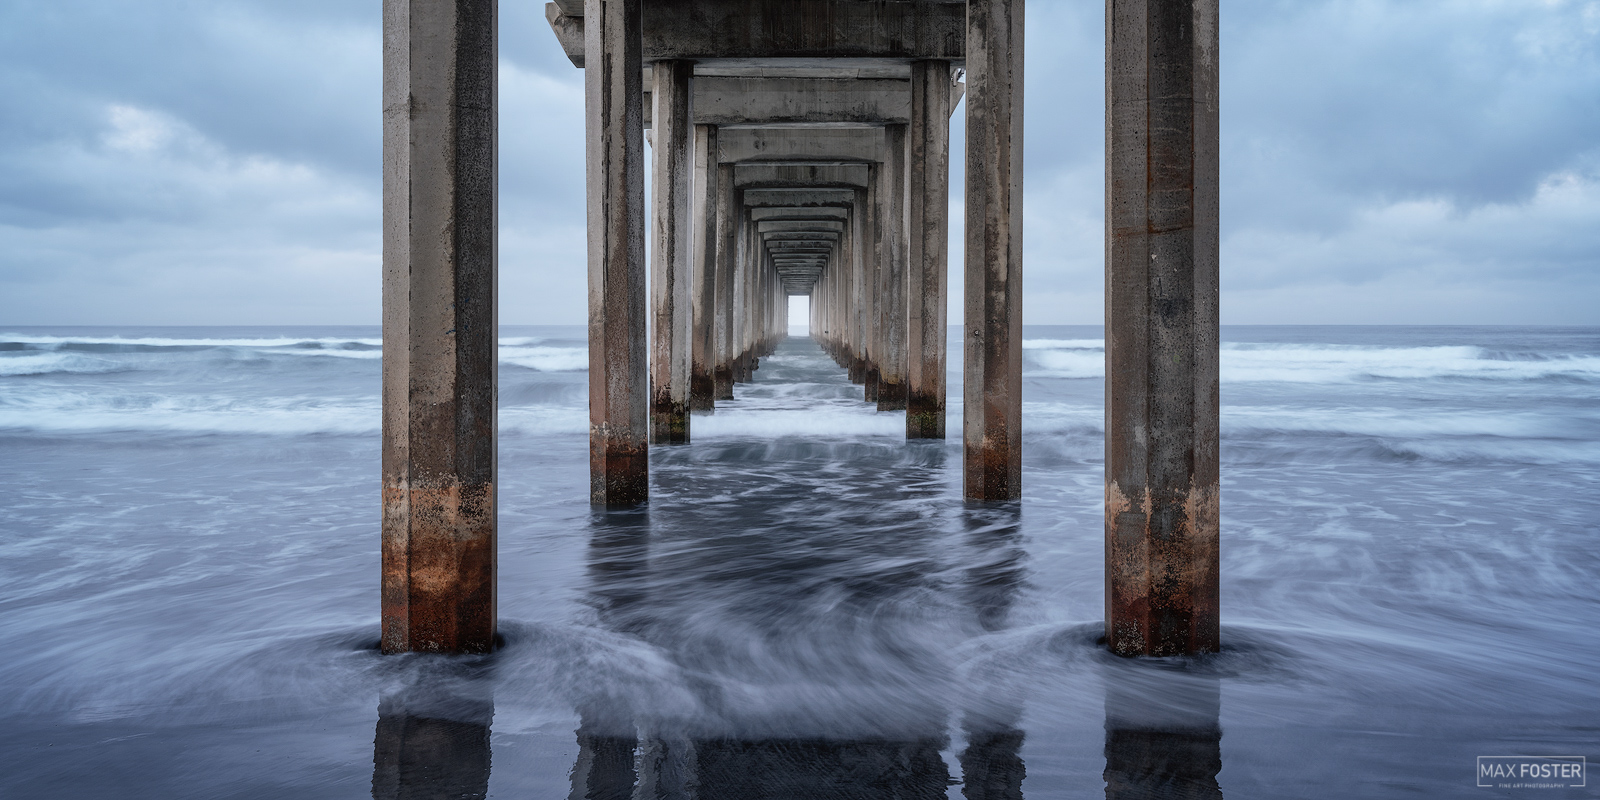 Fine Art Limited Edition of 100 The panoramic format version of Saltwater Blues, taken at Scripps Pier in San Diego, California...